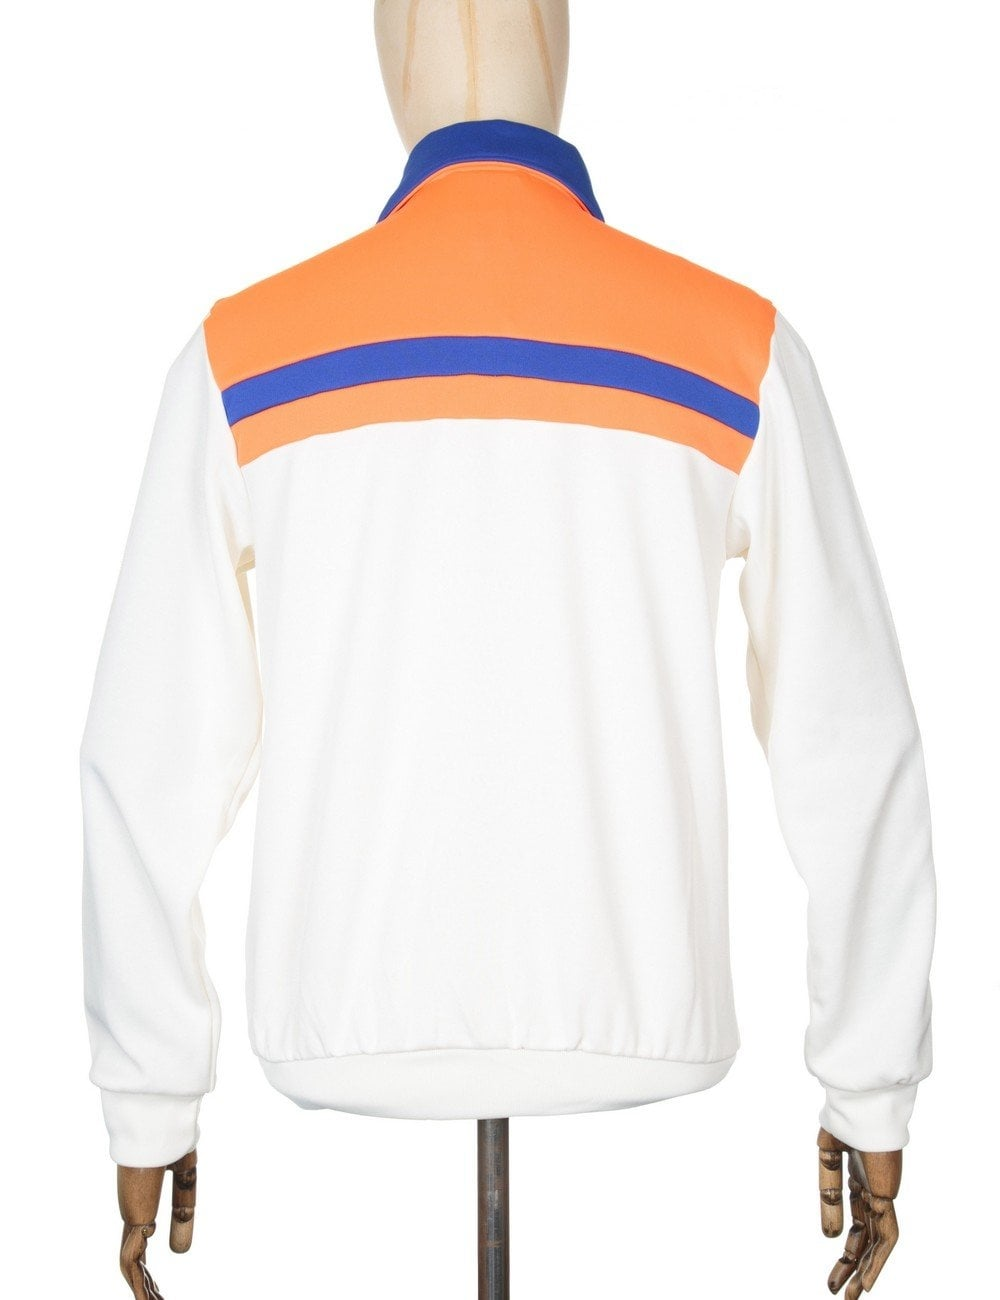 the best attitude 3847d c980e Nite Jogger OG Track Top - Chalk White